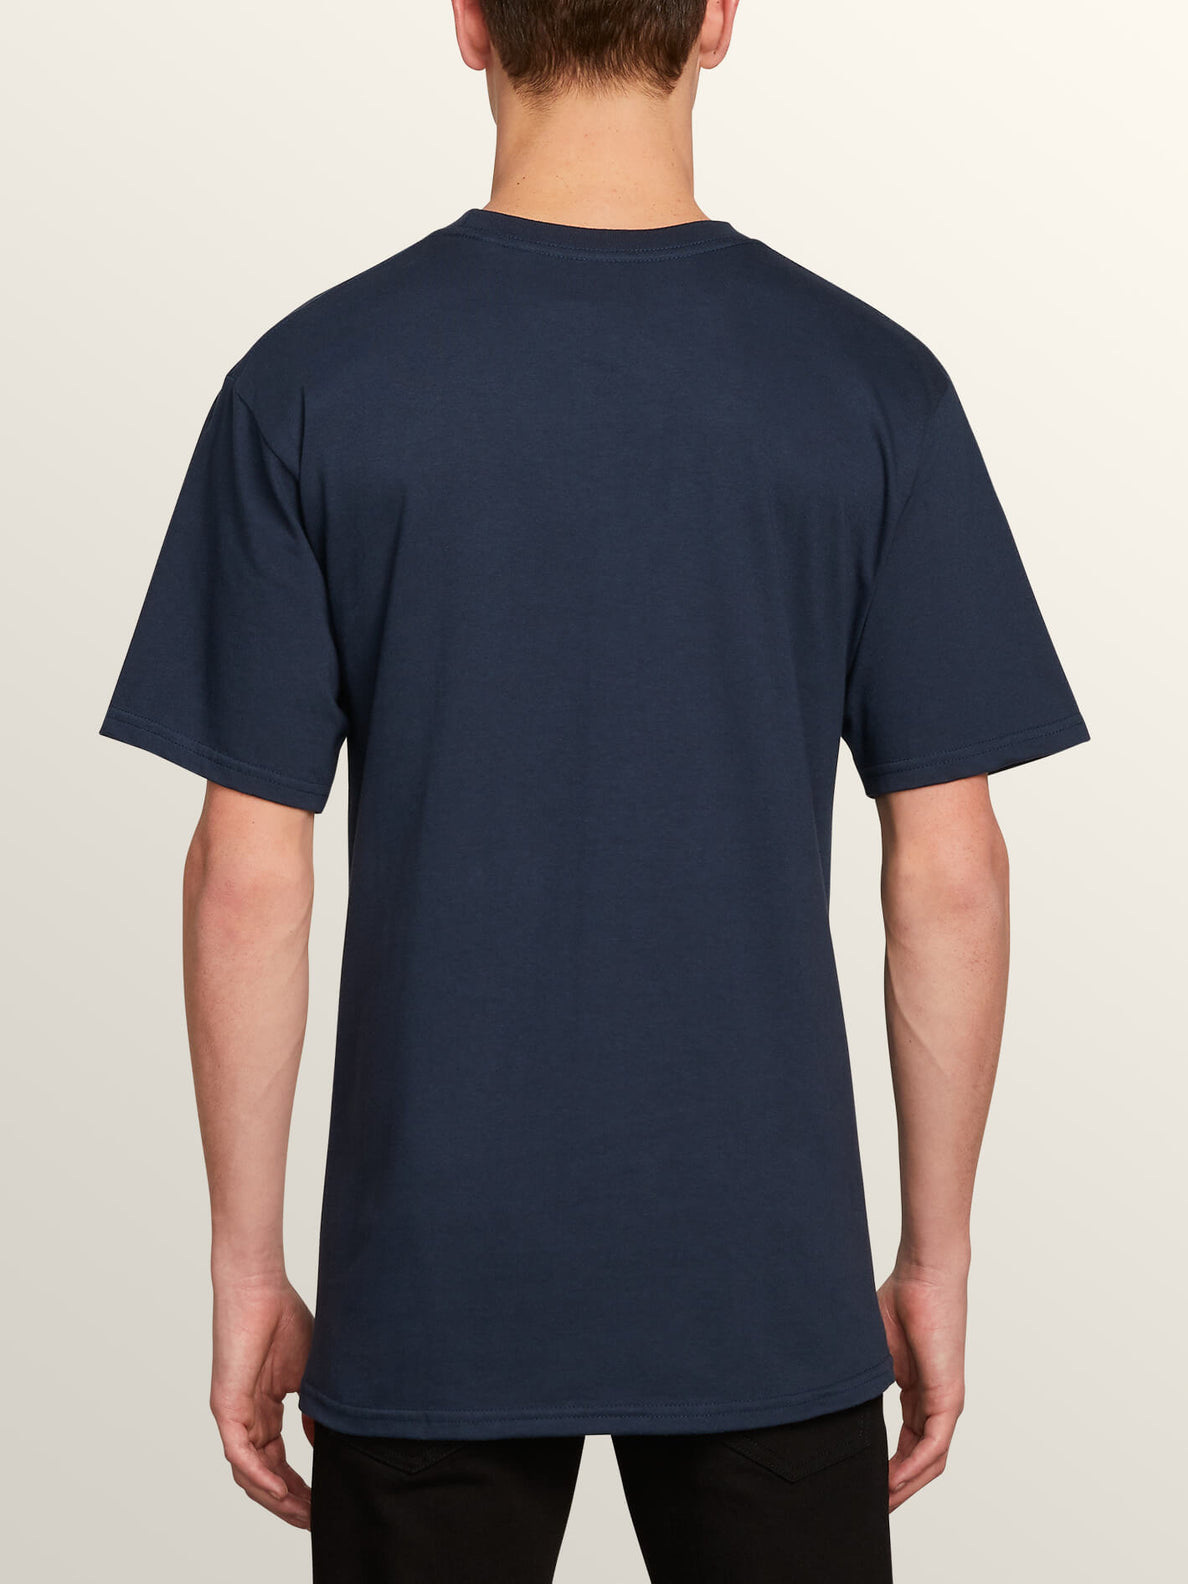 Stonecore 94 Short Sleeve Pocket Tee In Navy, Back View